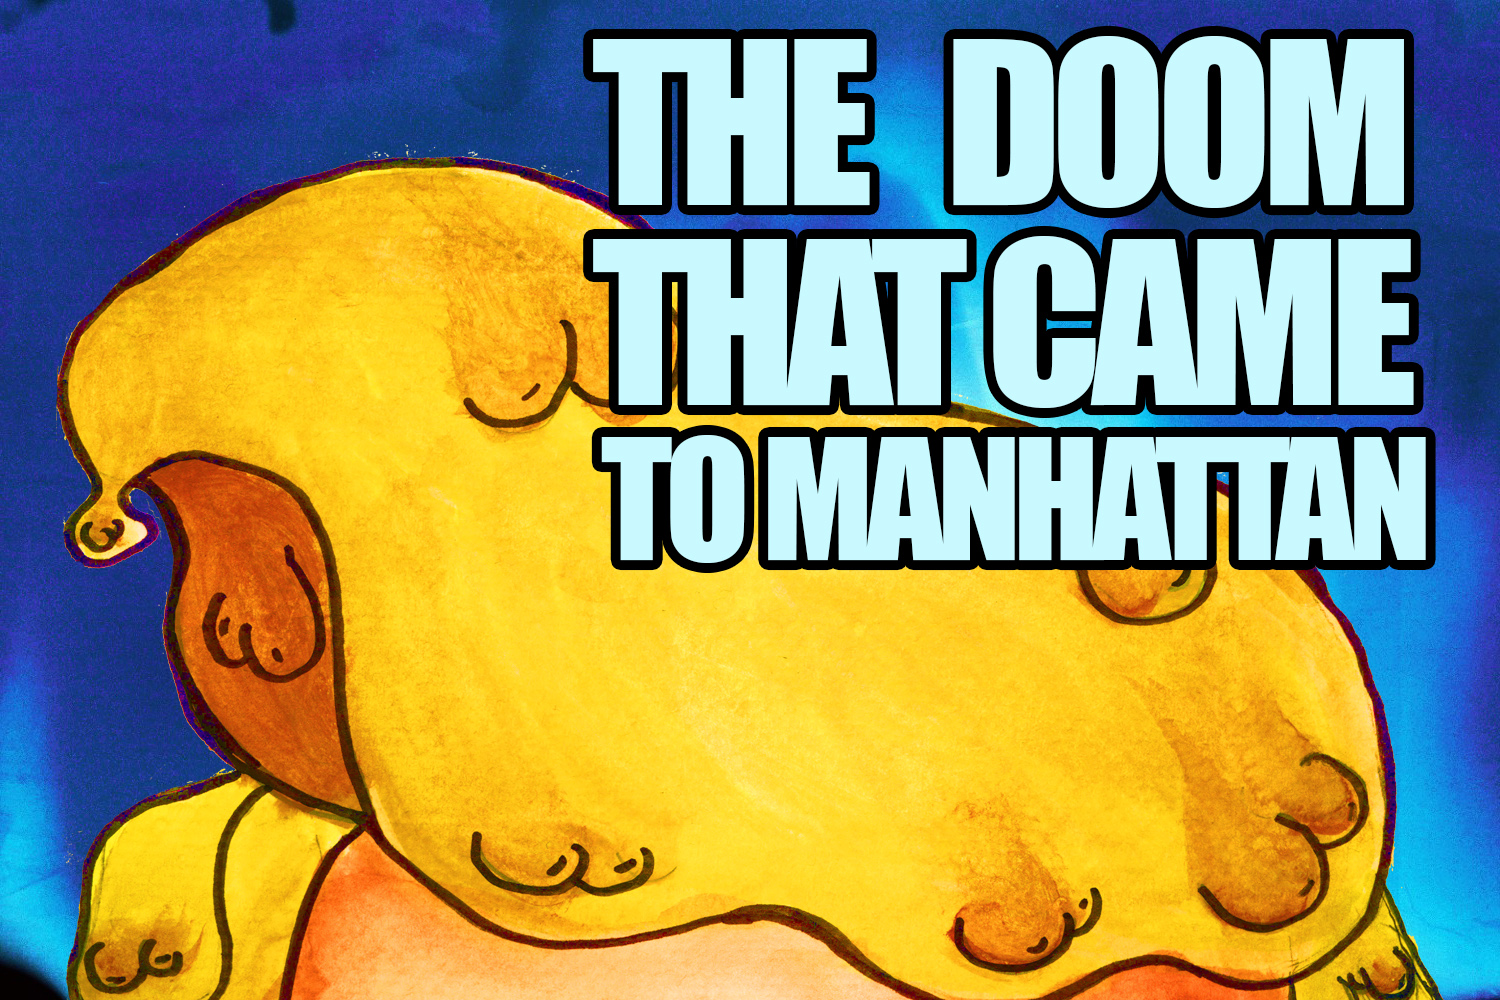 Donald P. Lovecraft, Or, The Doom That Came To Manhattan